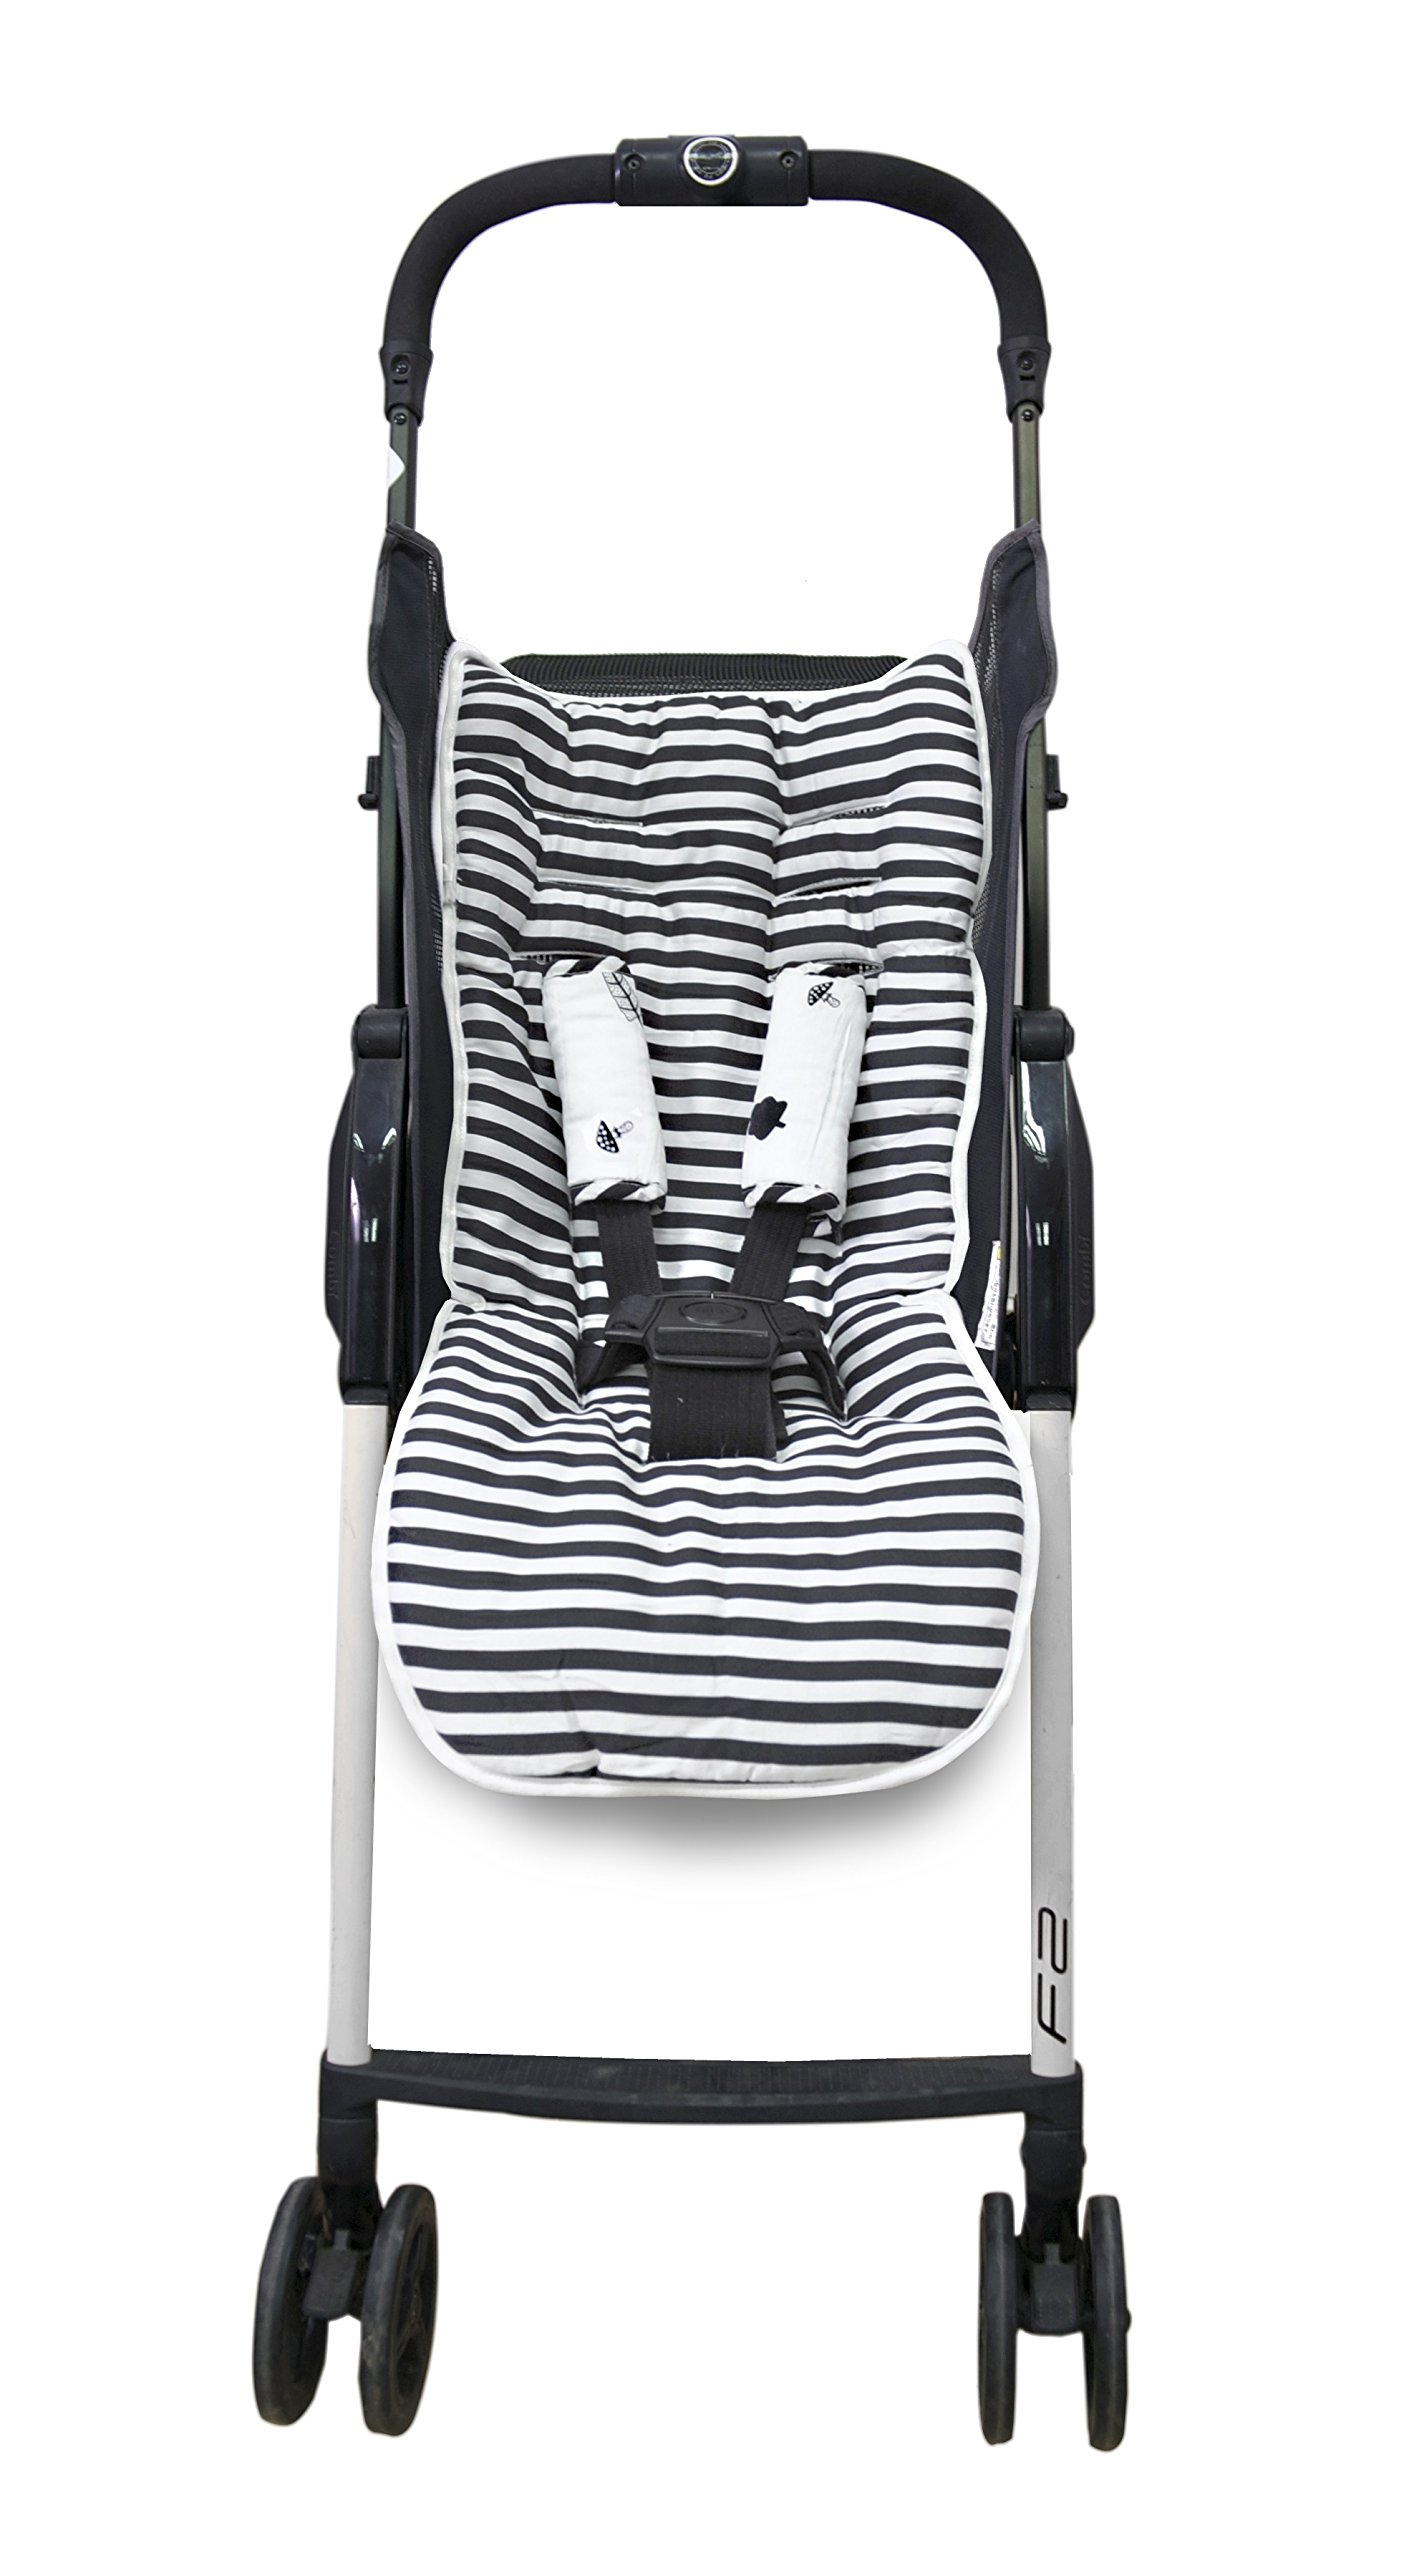 toTs Stroller Liner + Padded Safety Strap Covers, Forest, Black & White by toTs (Image #1)